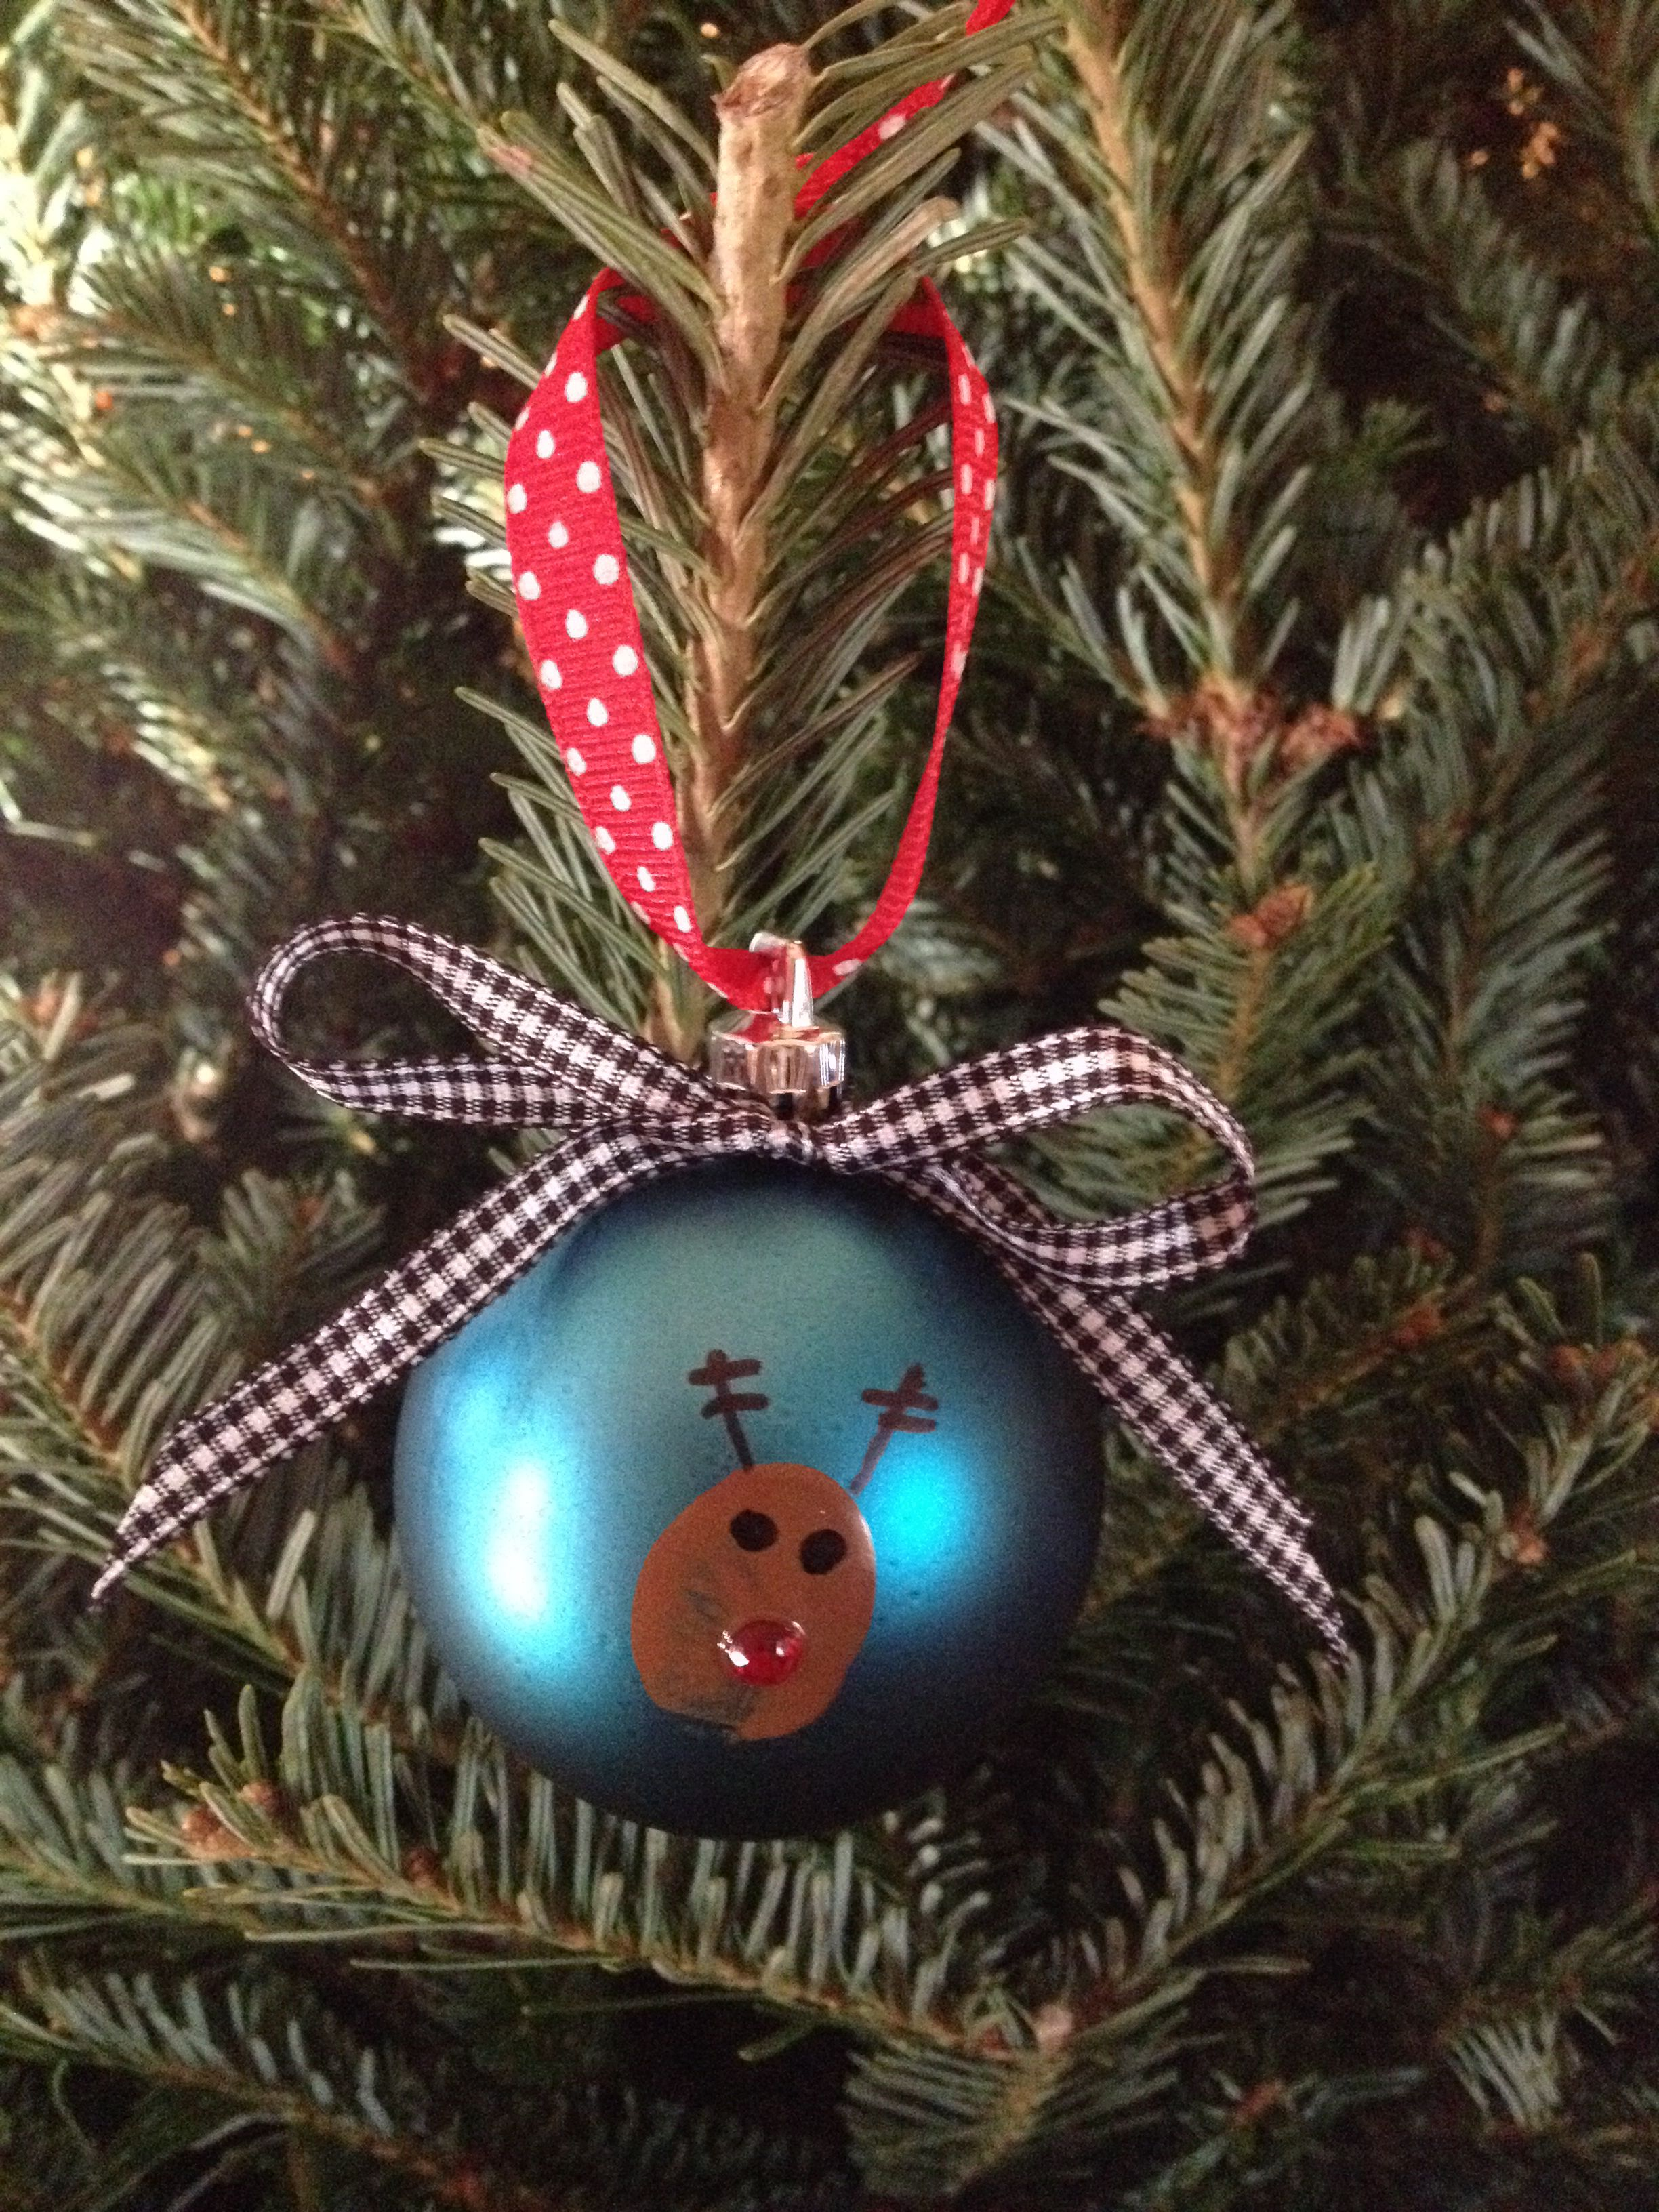 Thumbprint Reindeer Ornament Great For Kids To Make Christmas Ornaments Christmas Reindeer Christmas Crafts